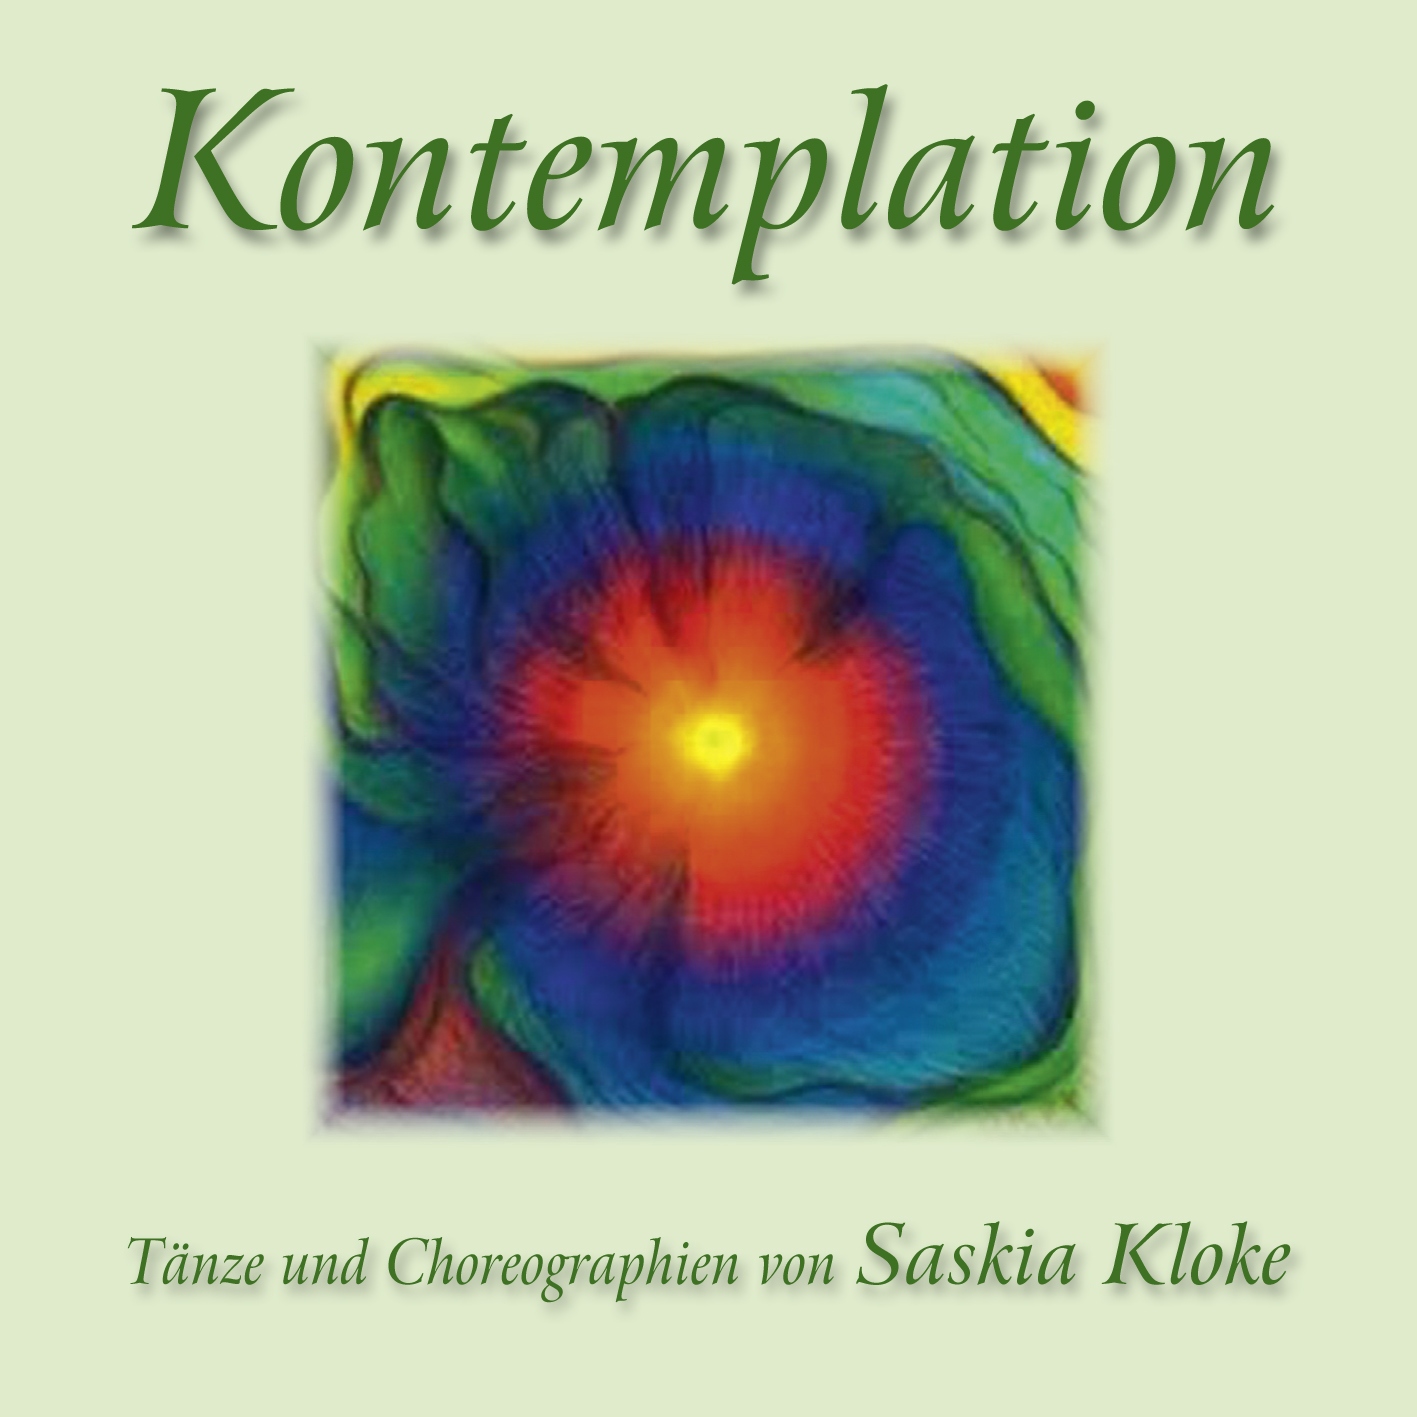 CD Kontemplation